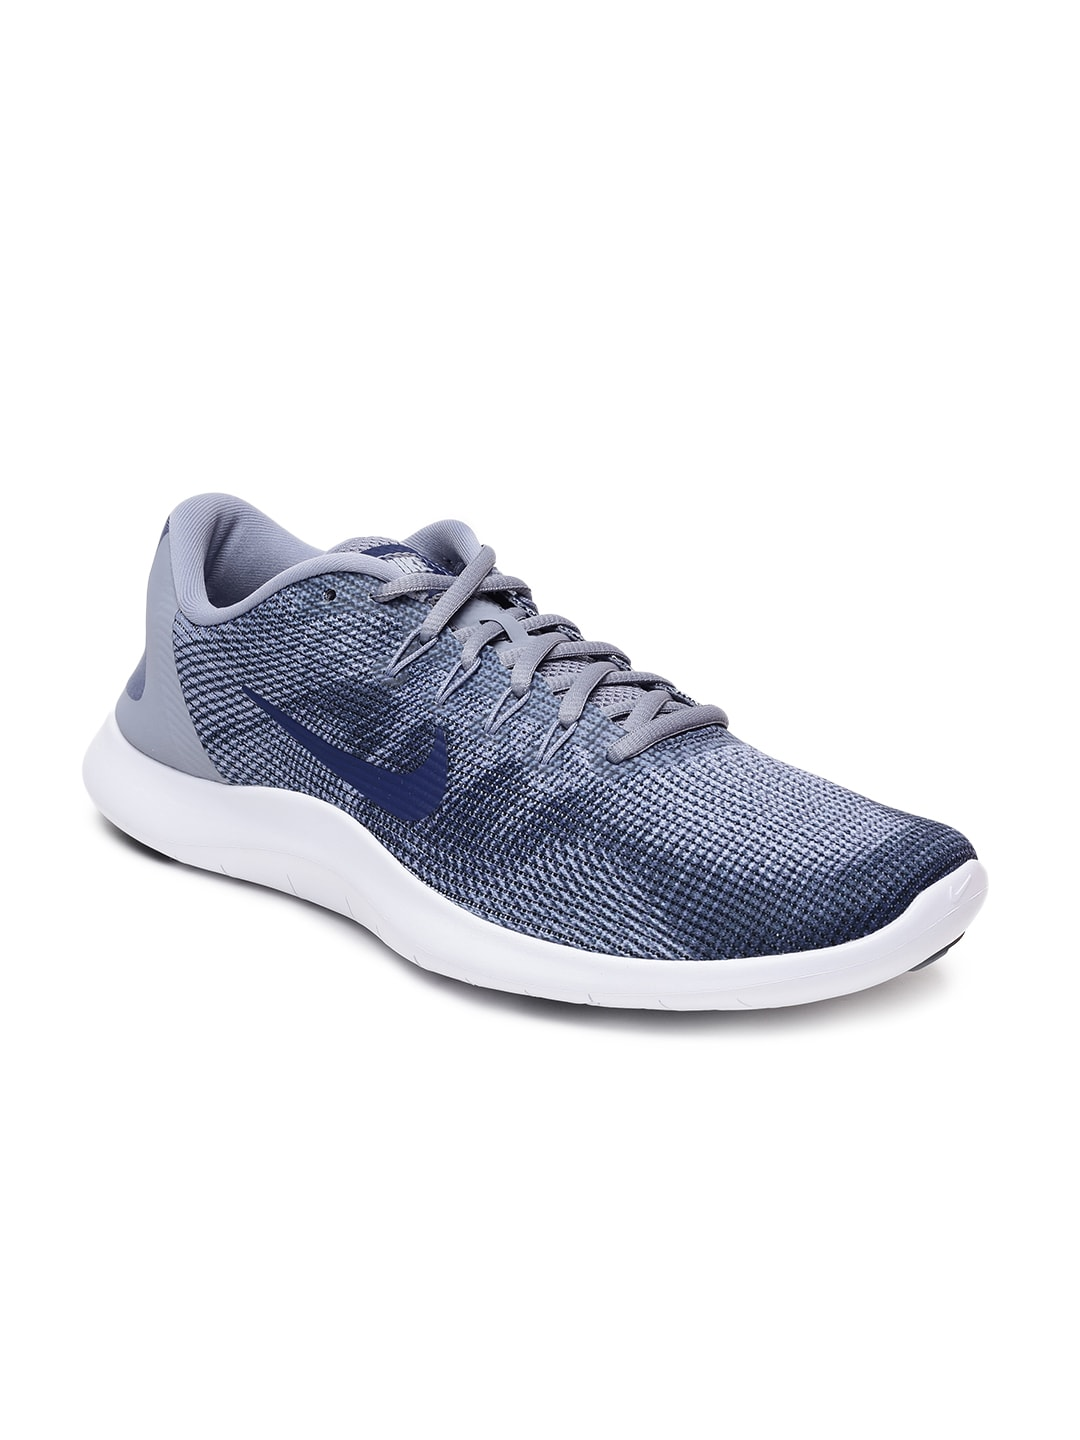 Myntra For Women Buy Online Nike Shoes Men amp; 06Rzvqw